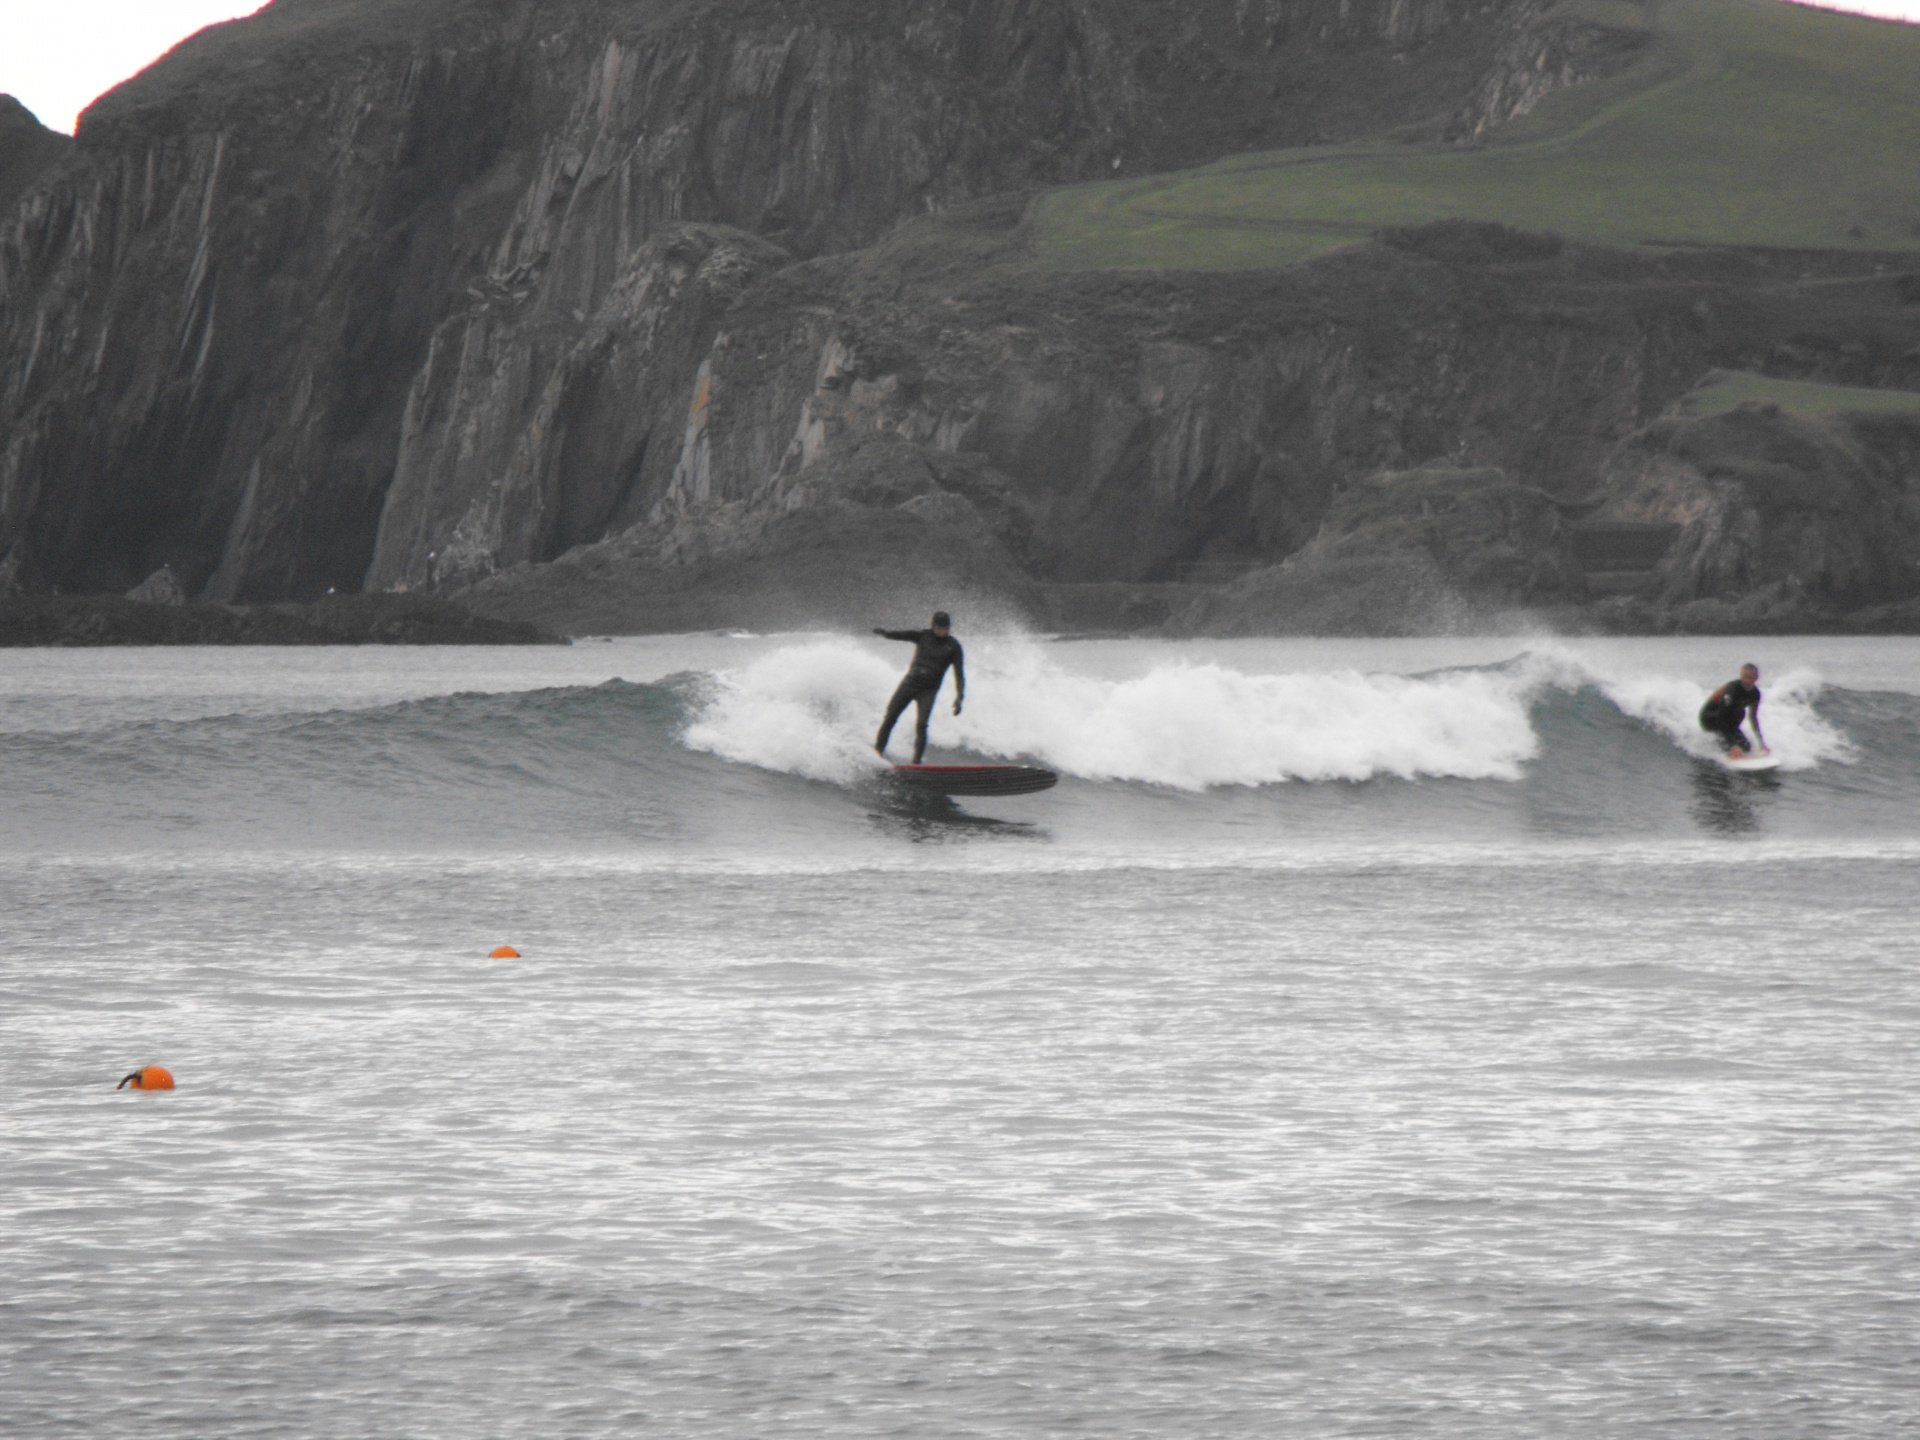 David P's photo of Bantham